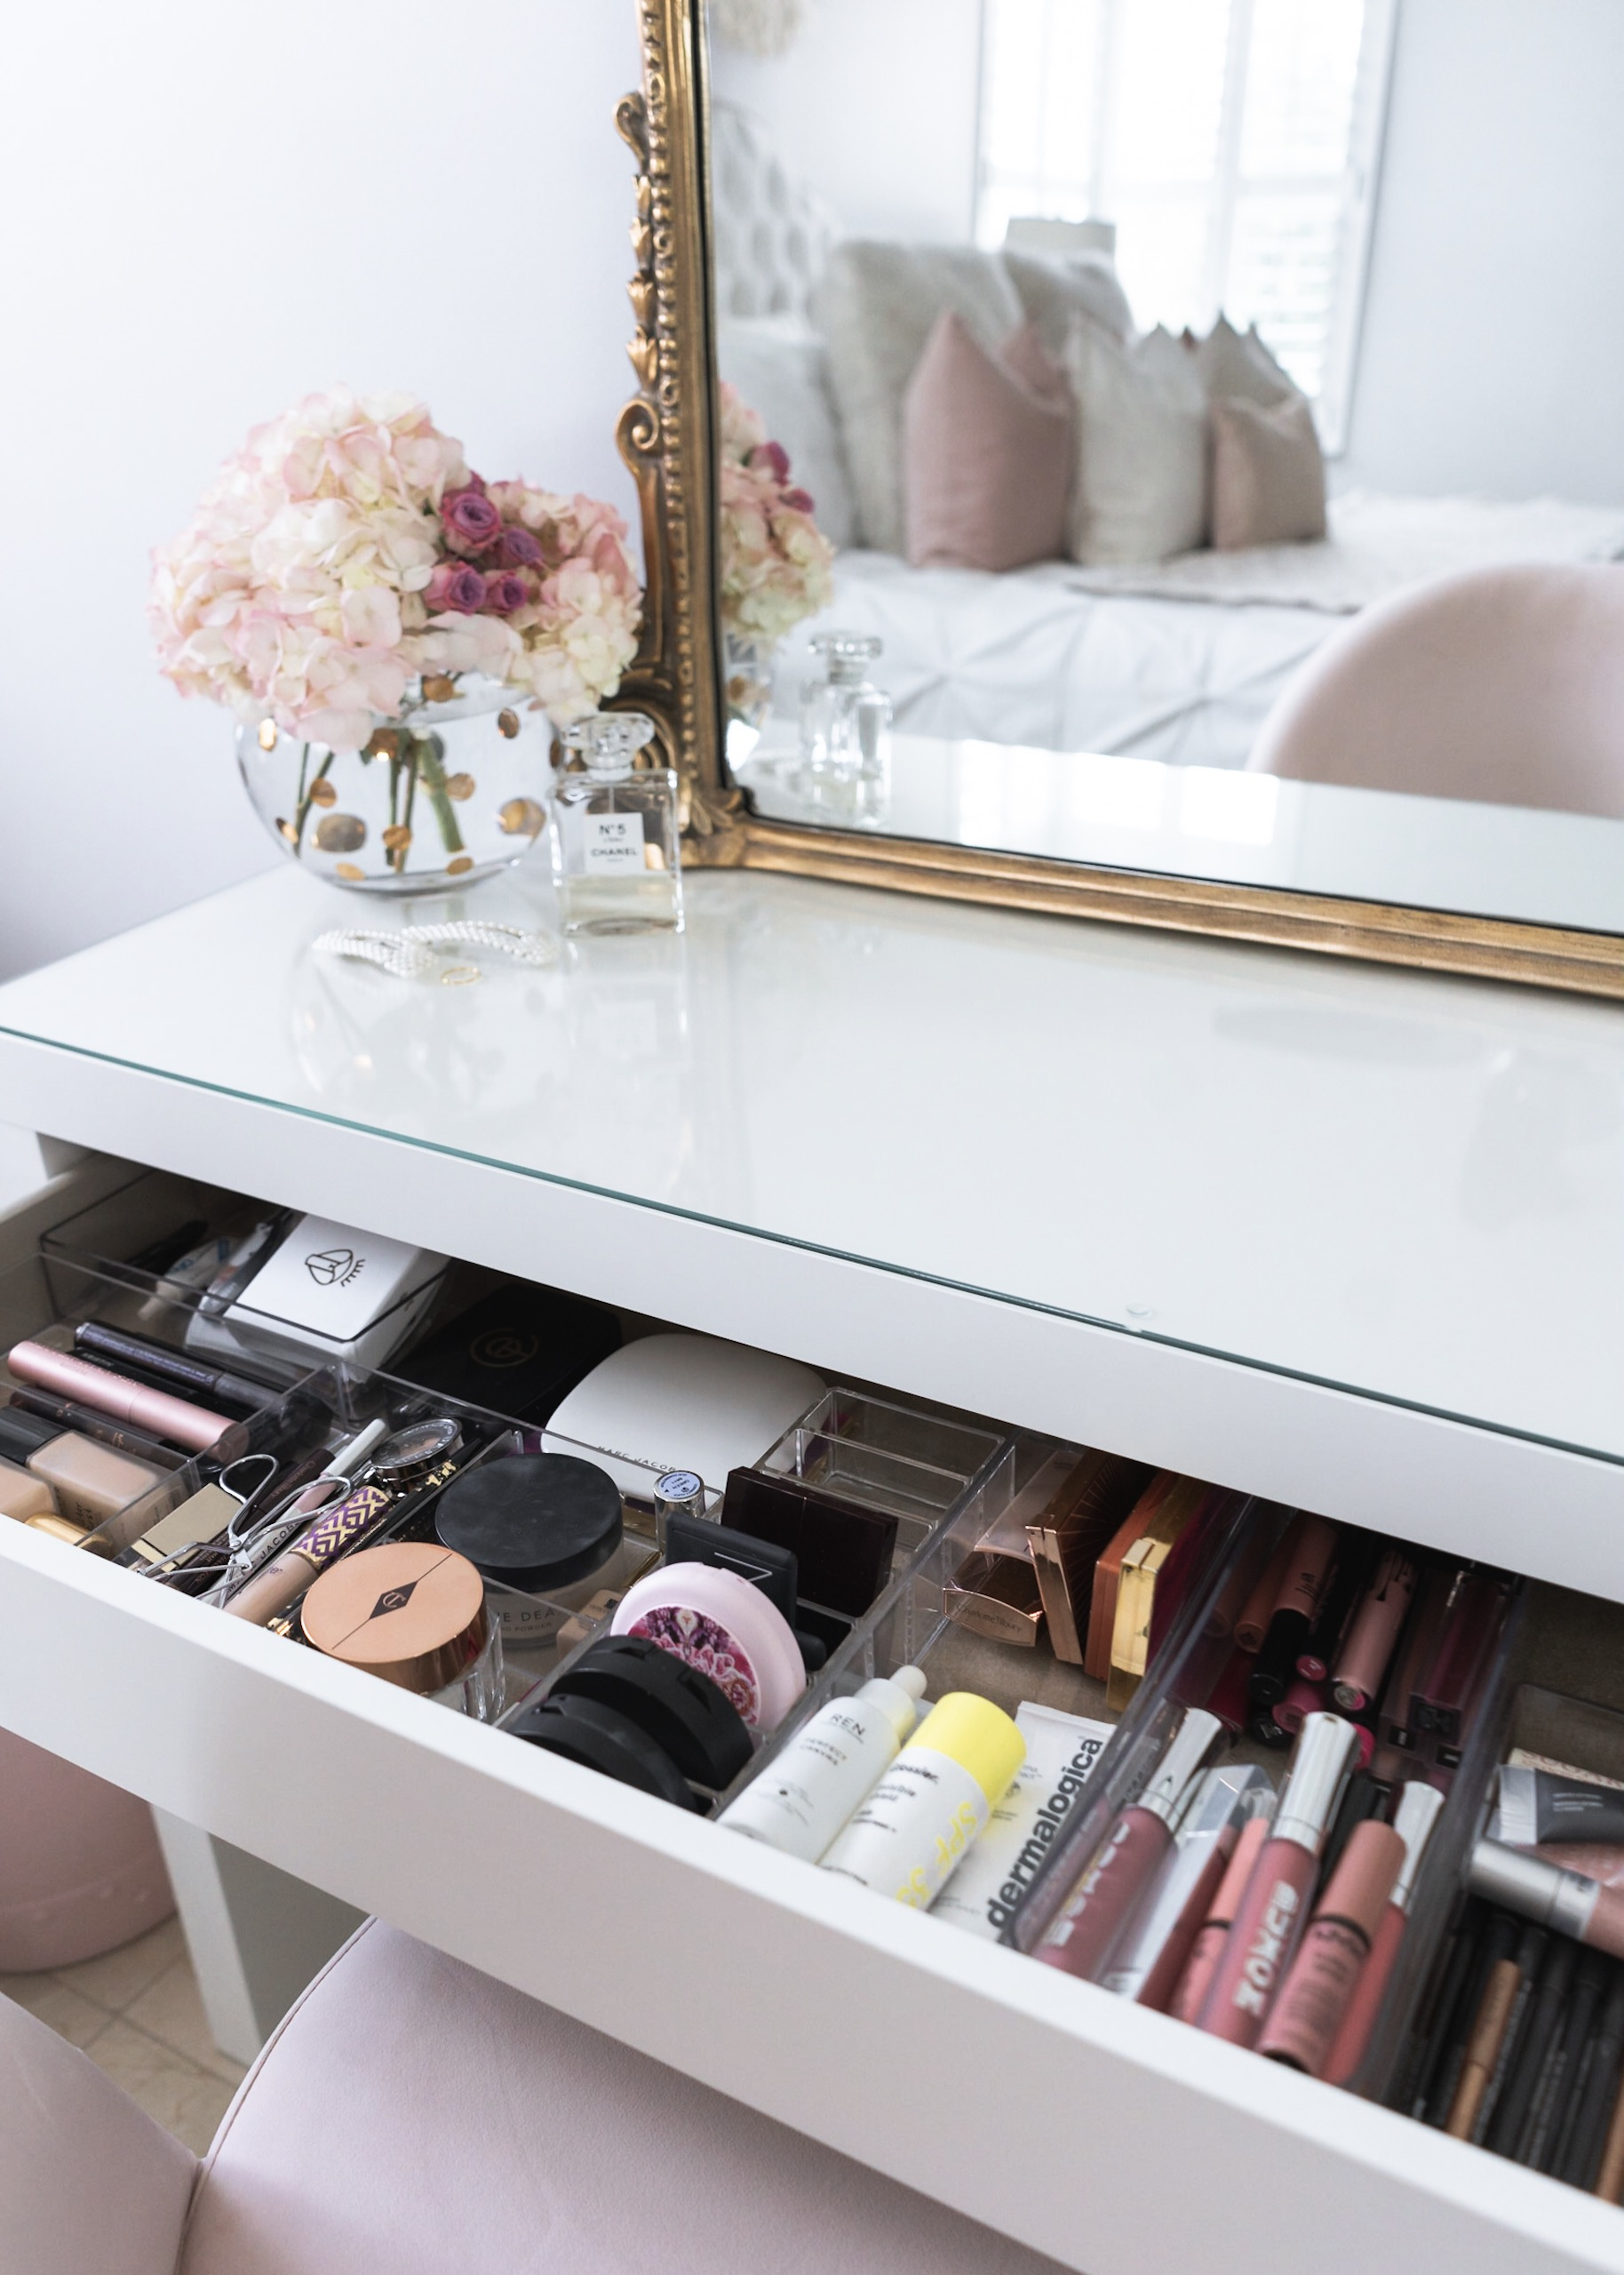 How I Organize My Makeup Bedroom